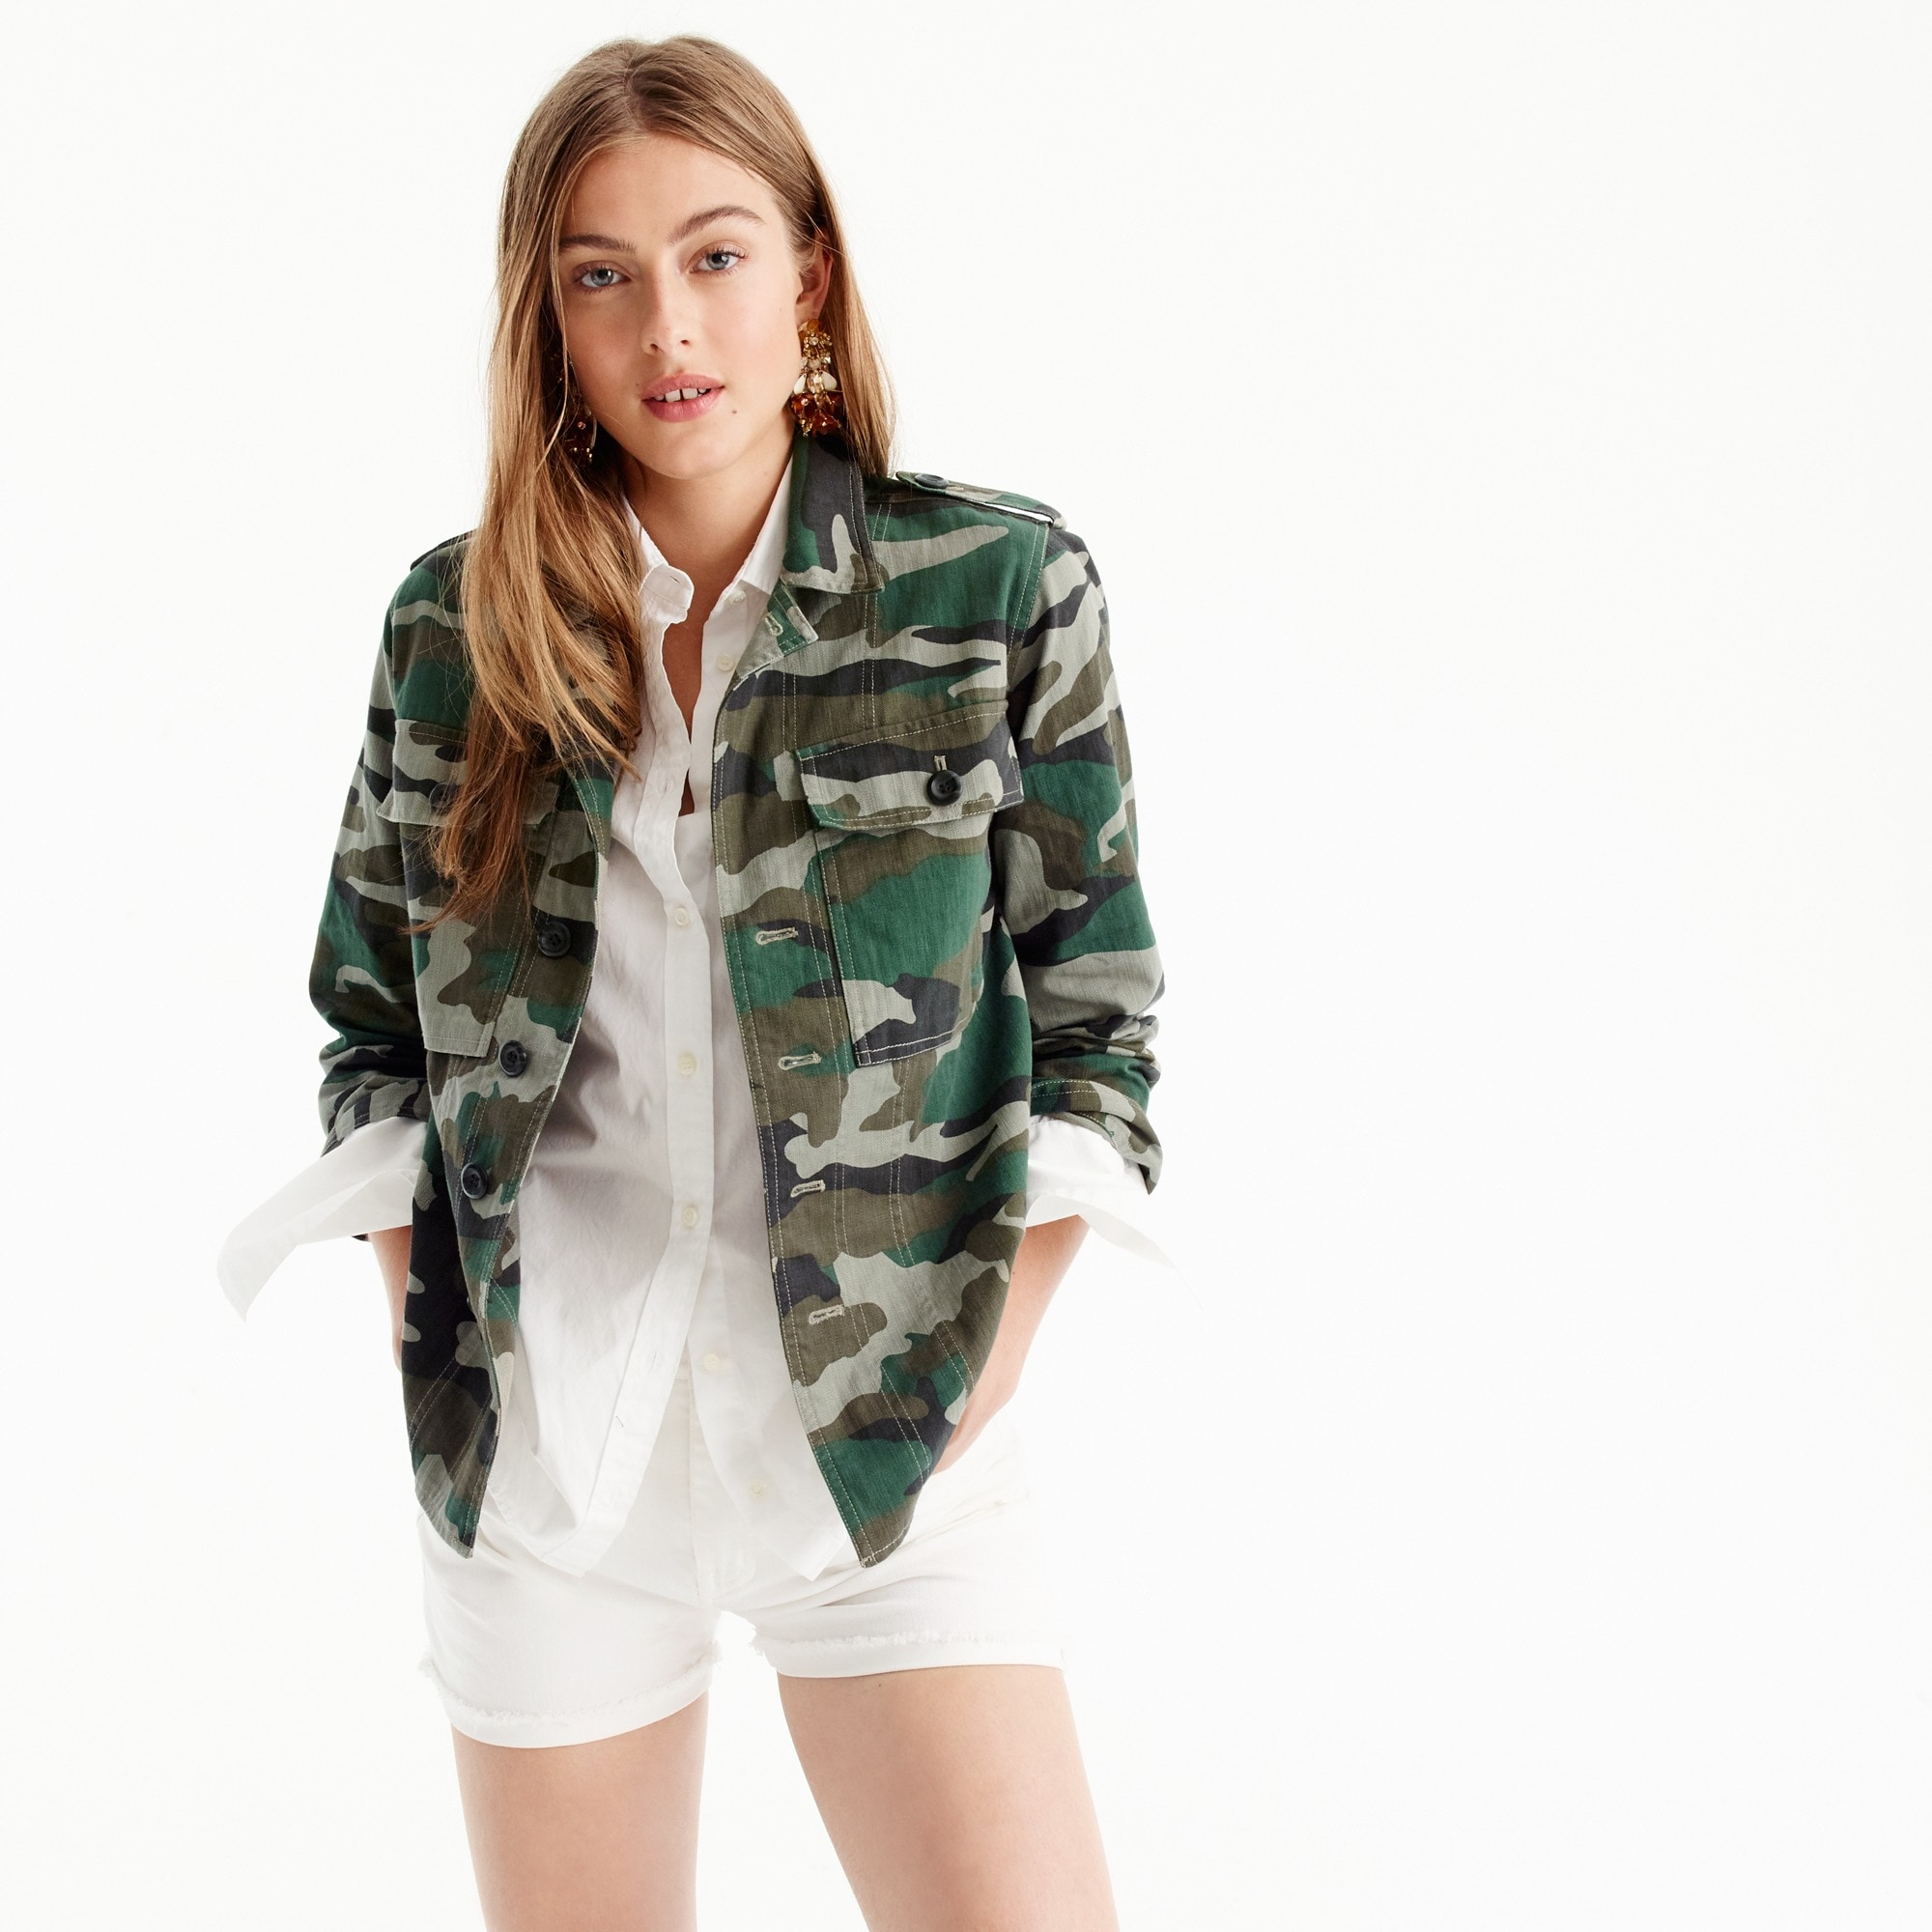 Image 1 for Camouflage utility shirt-jacket